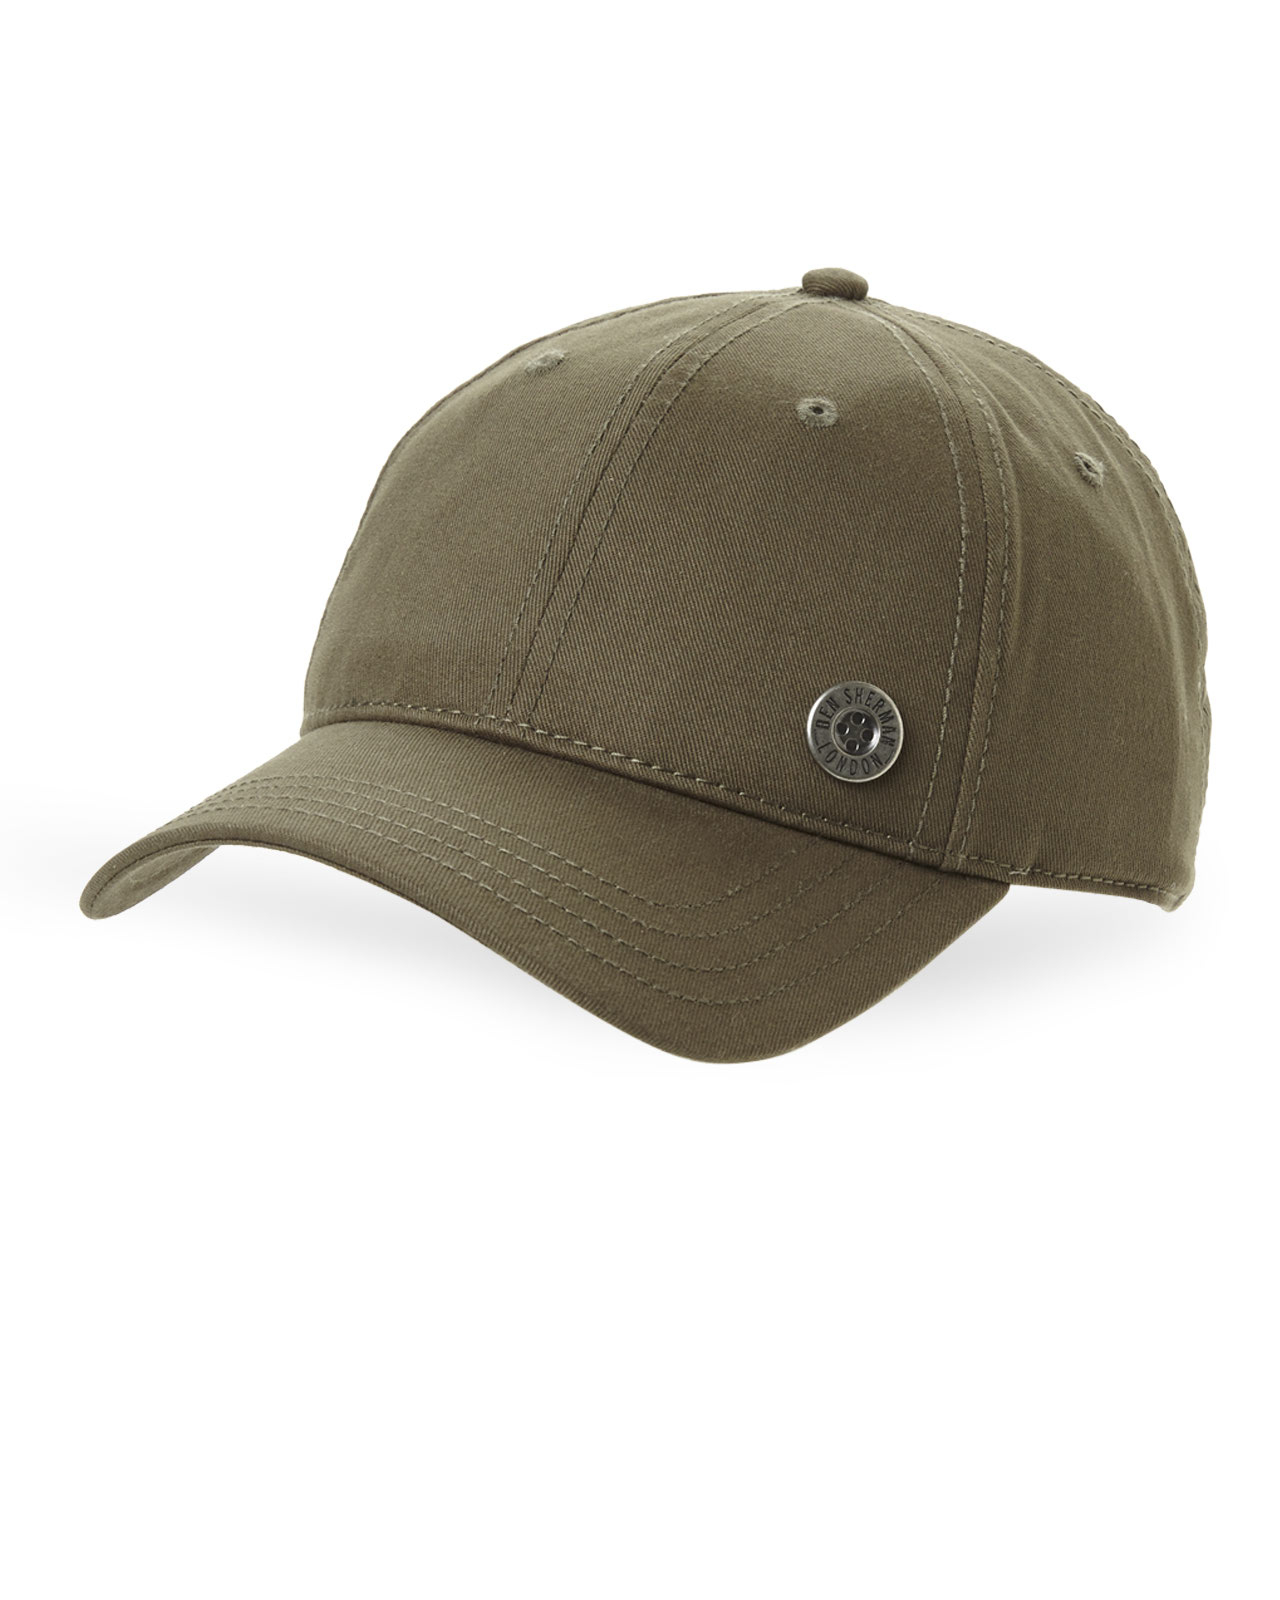 fecb26f0ca394 germany mens hats under 100 nordstrom 0524c cea6c  best pittsburgh pirates  hat beige ben sherman 20e25 a0f4d